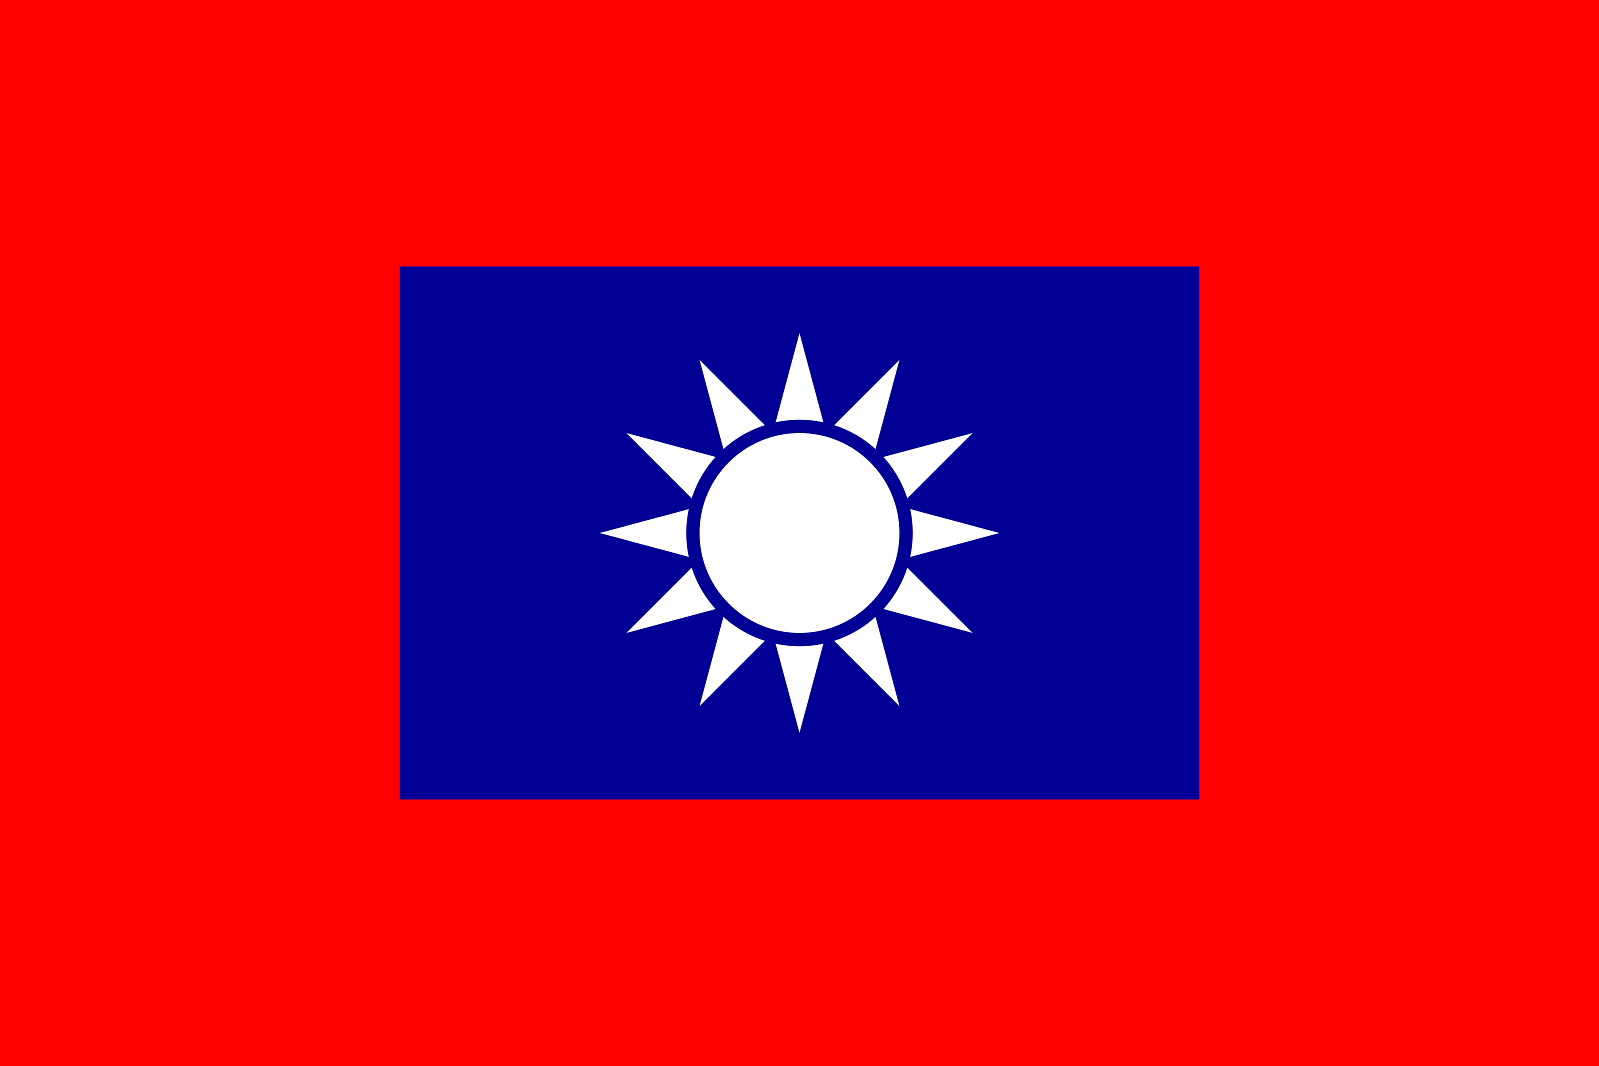 파일:1599px-Flag_of_the_Republic_of_China_Army.svg.png